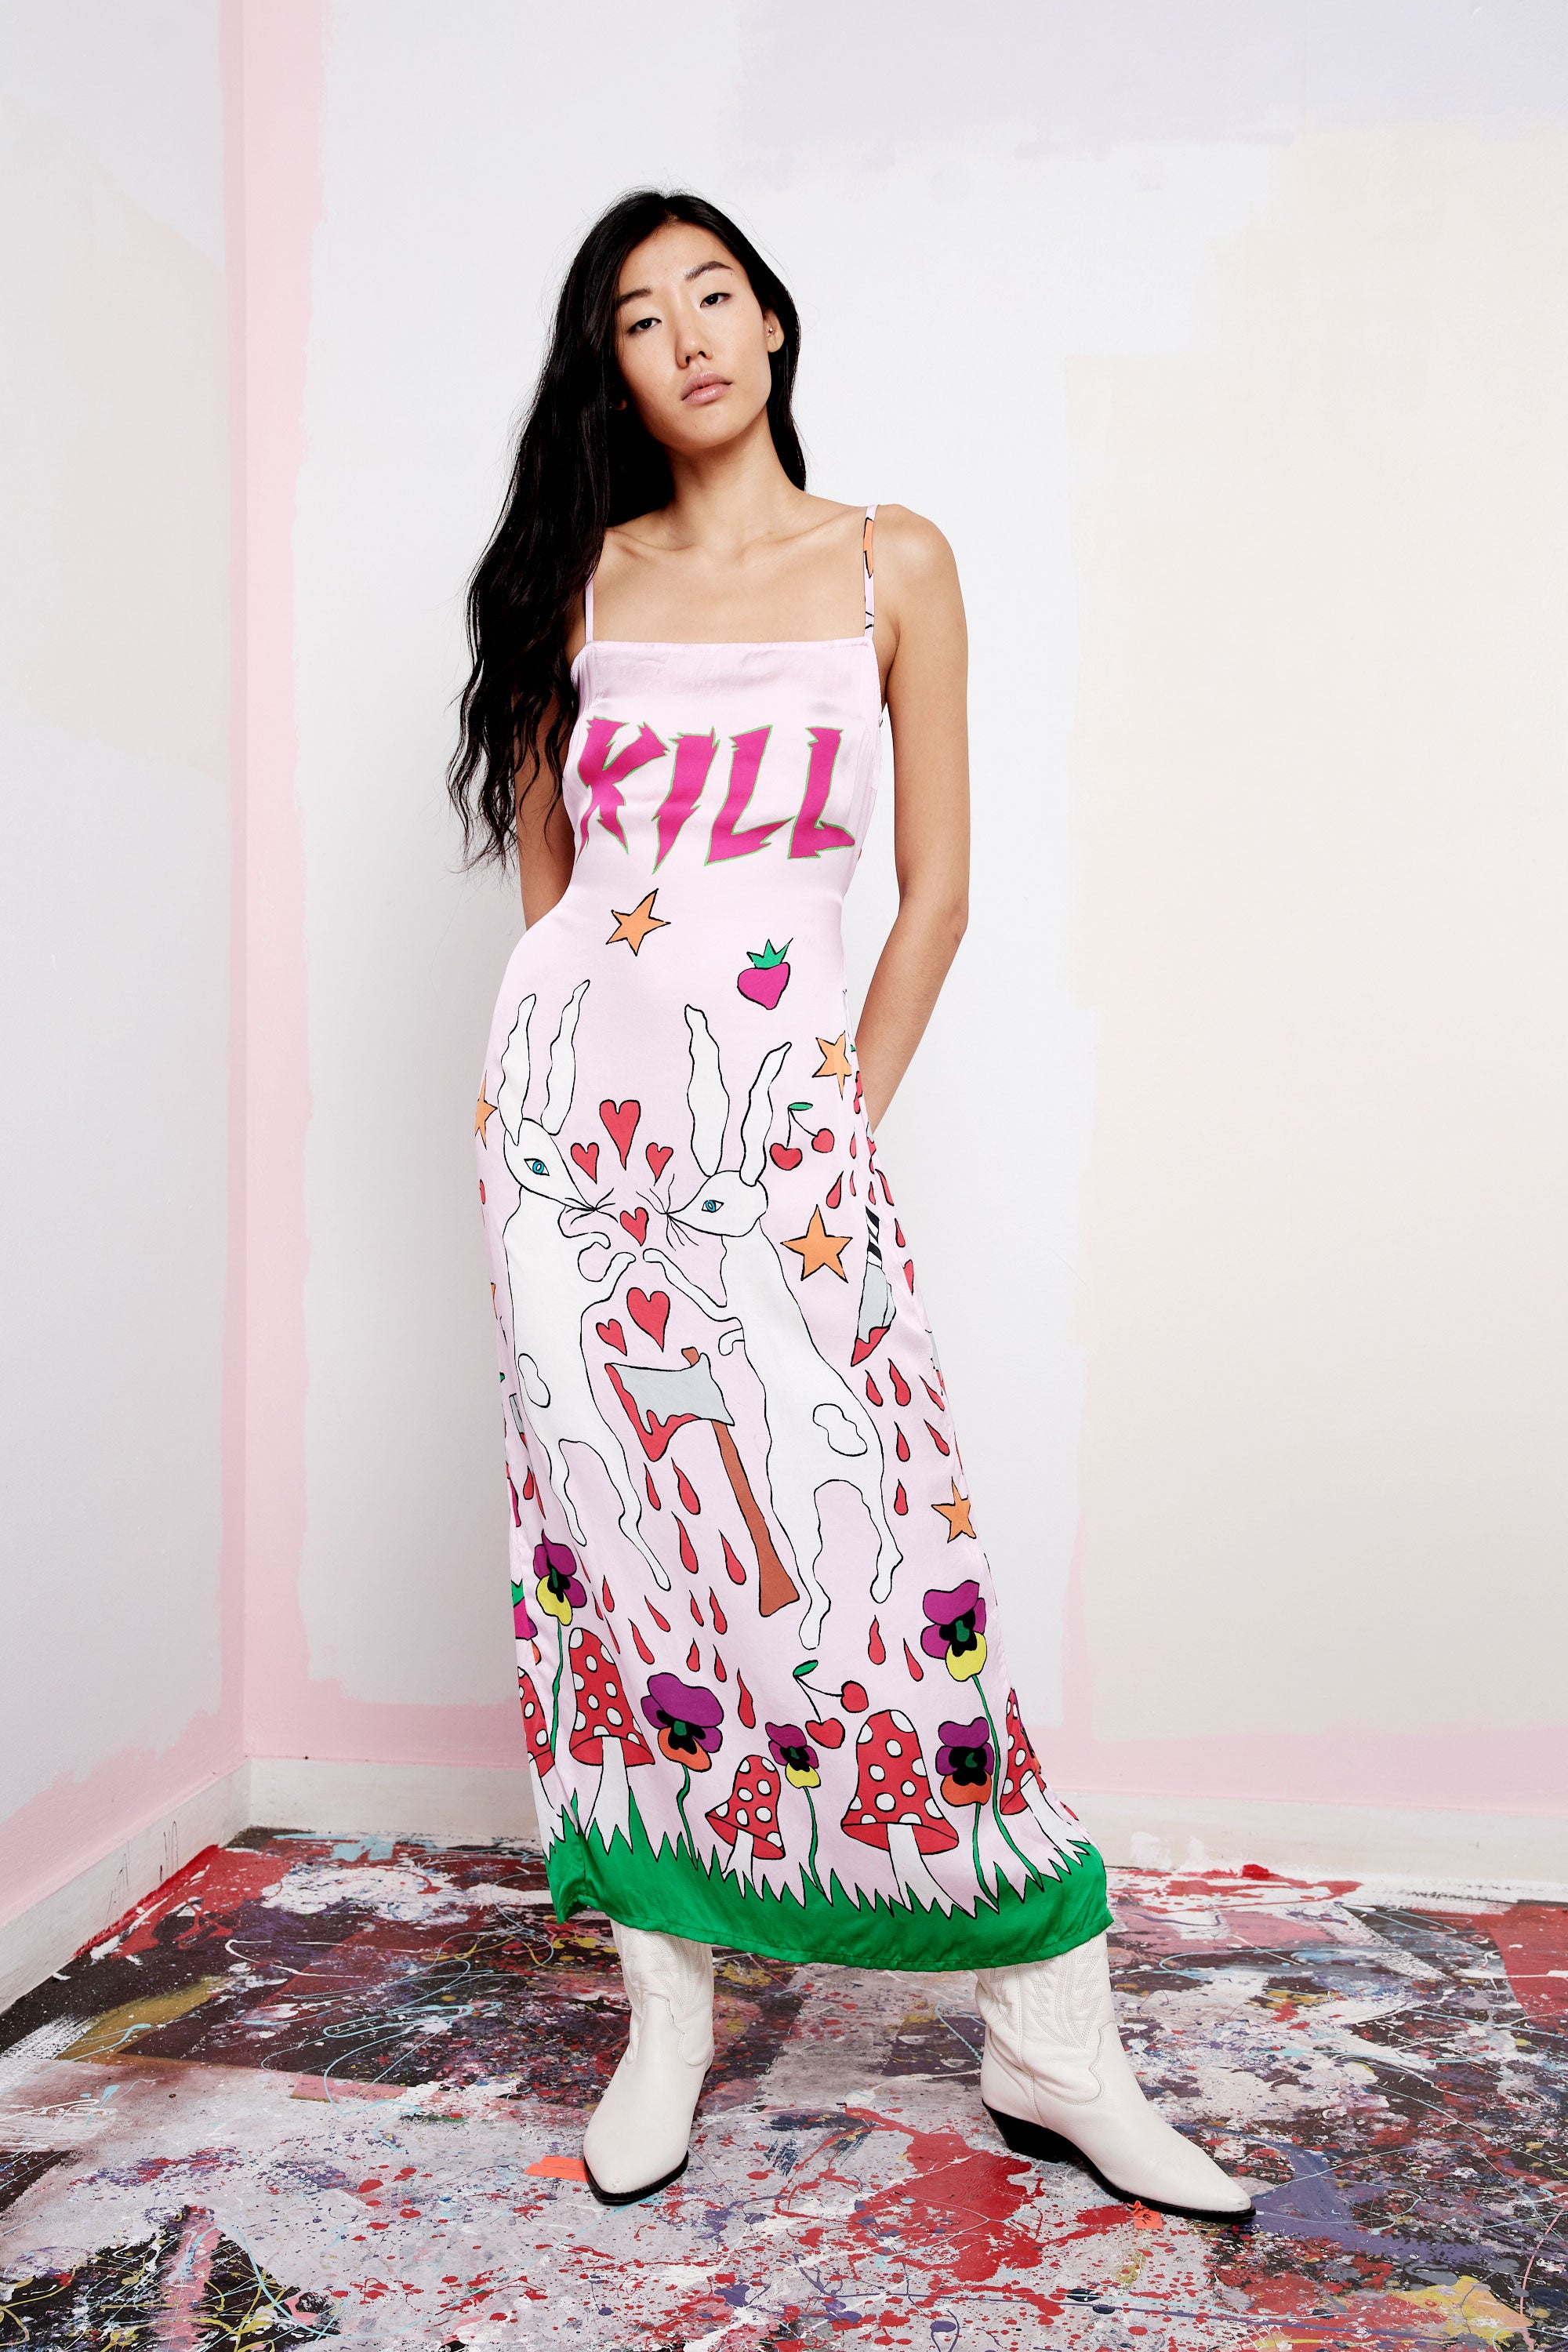 Kill Kill Kill Slip Dress